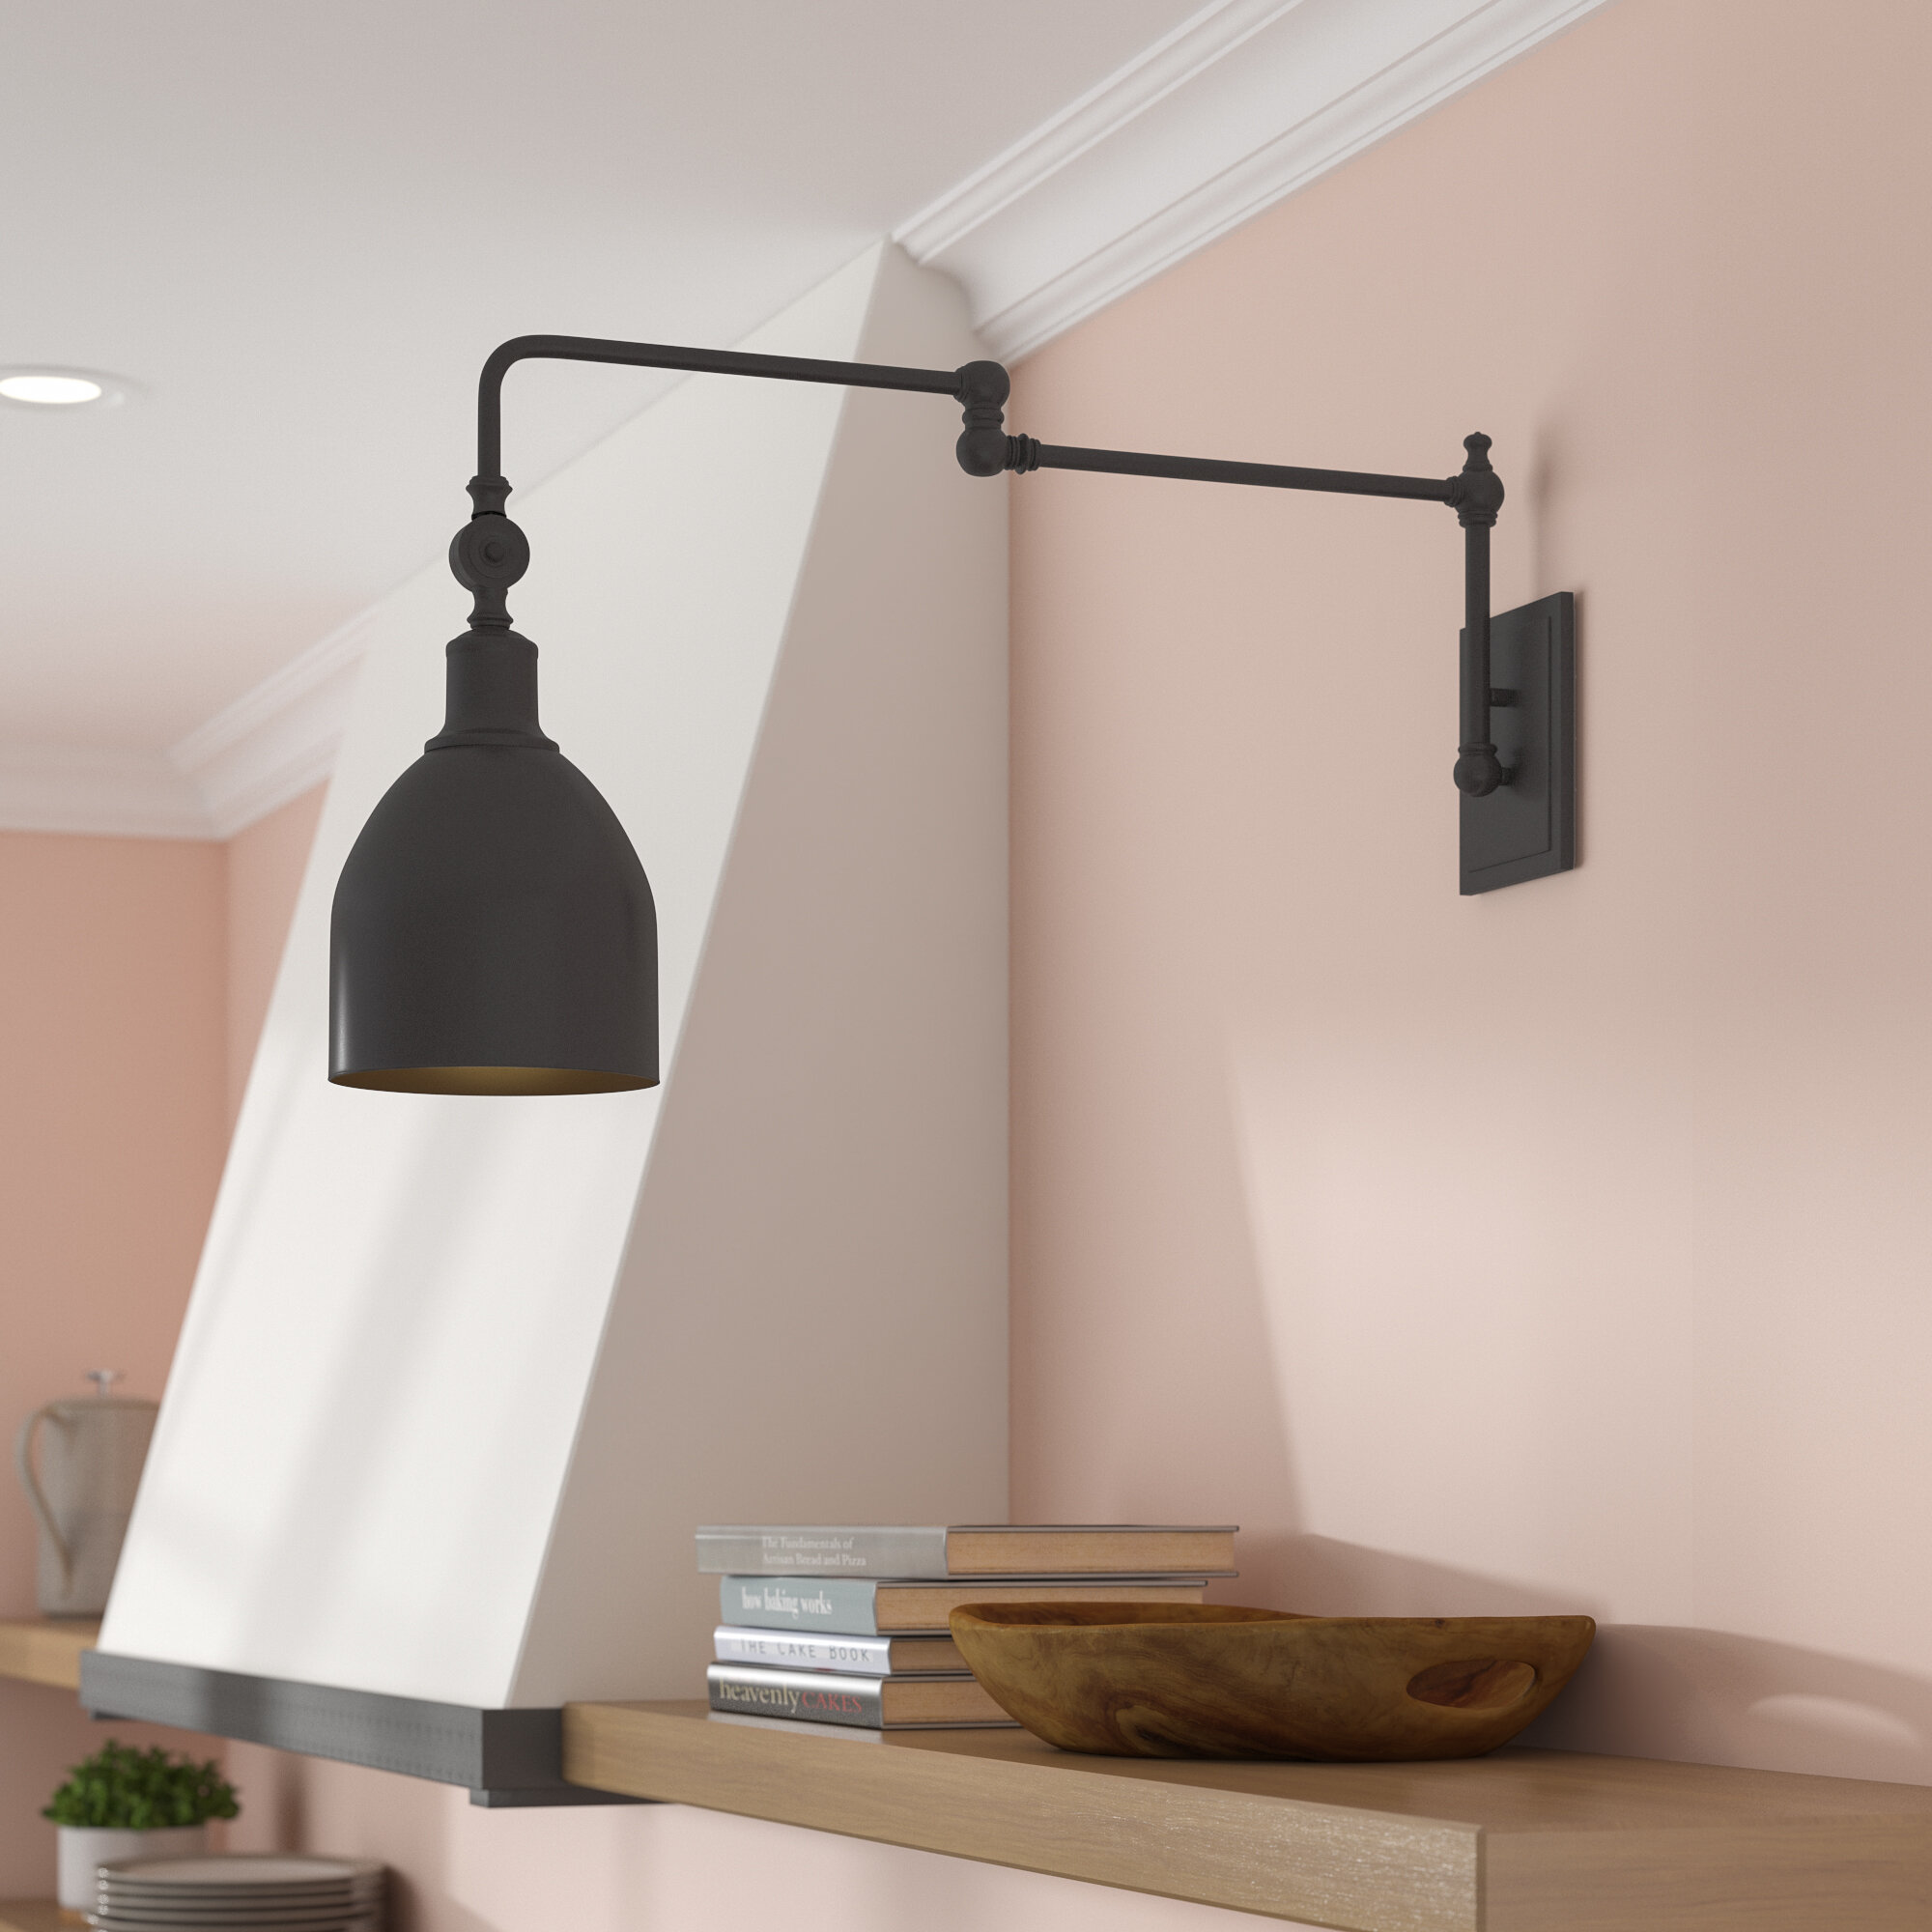 Wayfair Hard Wired Swing Arm Wall Sconces You Ll Love In 2021